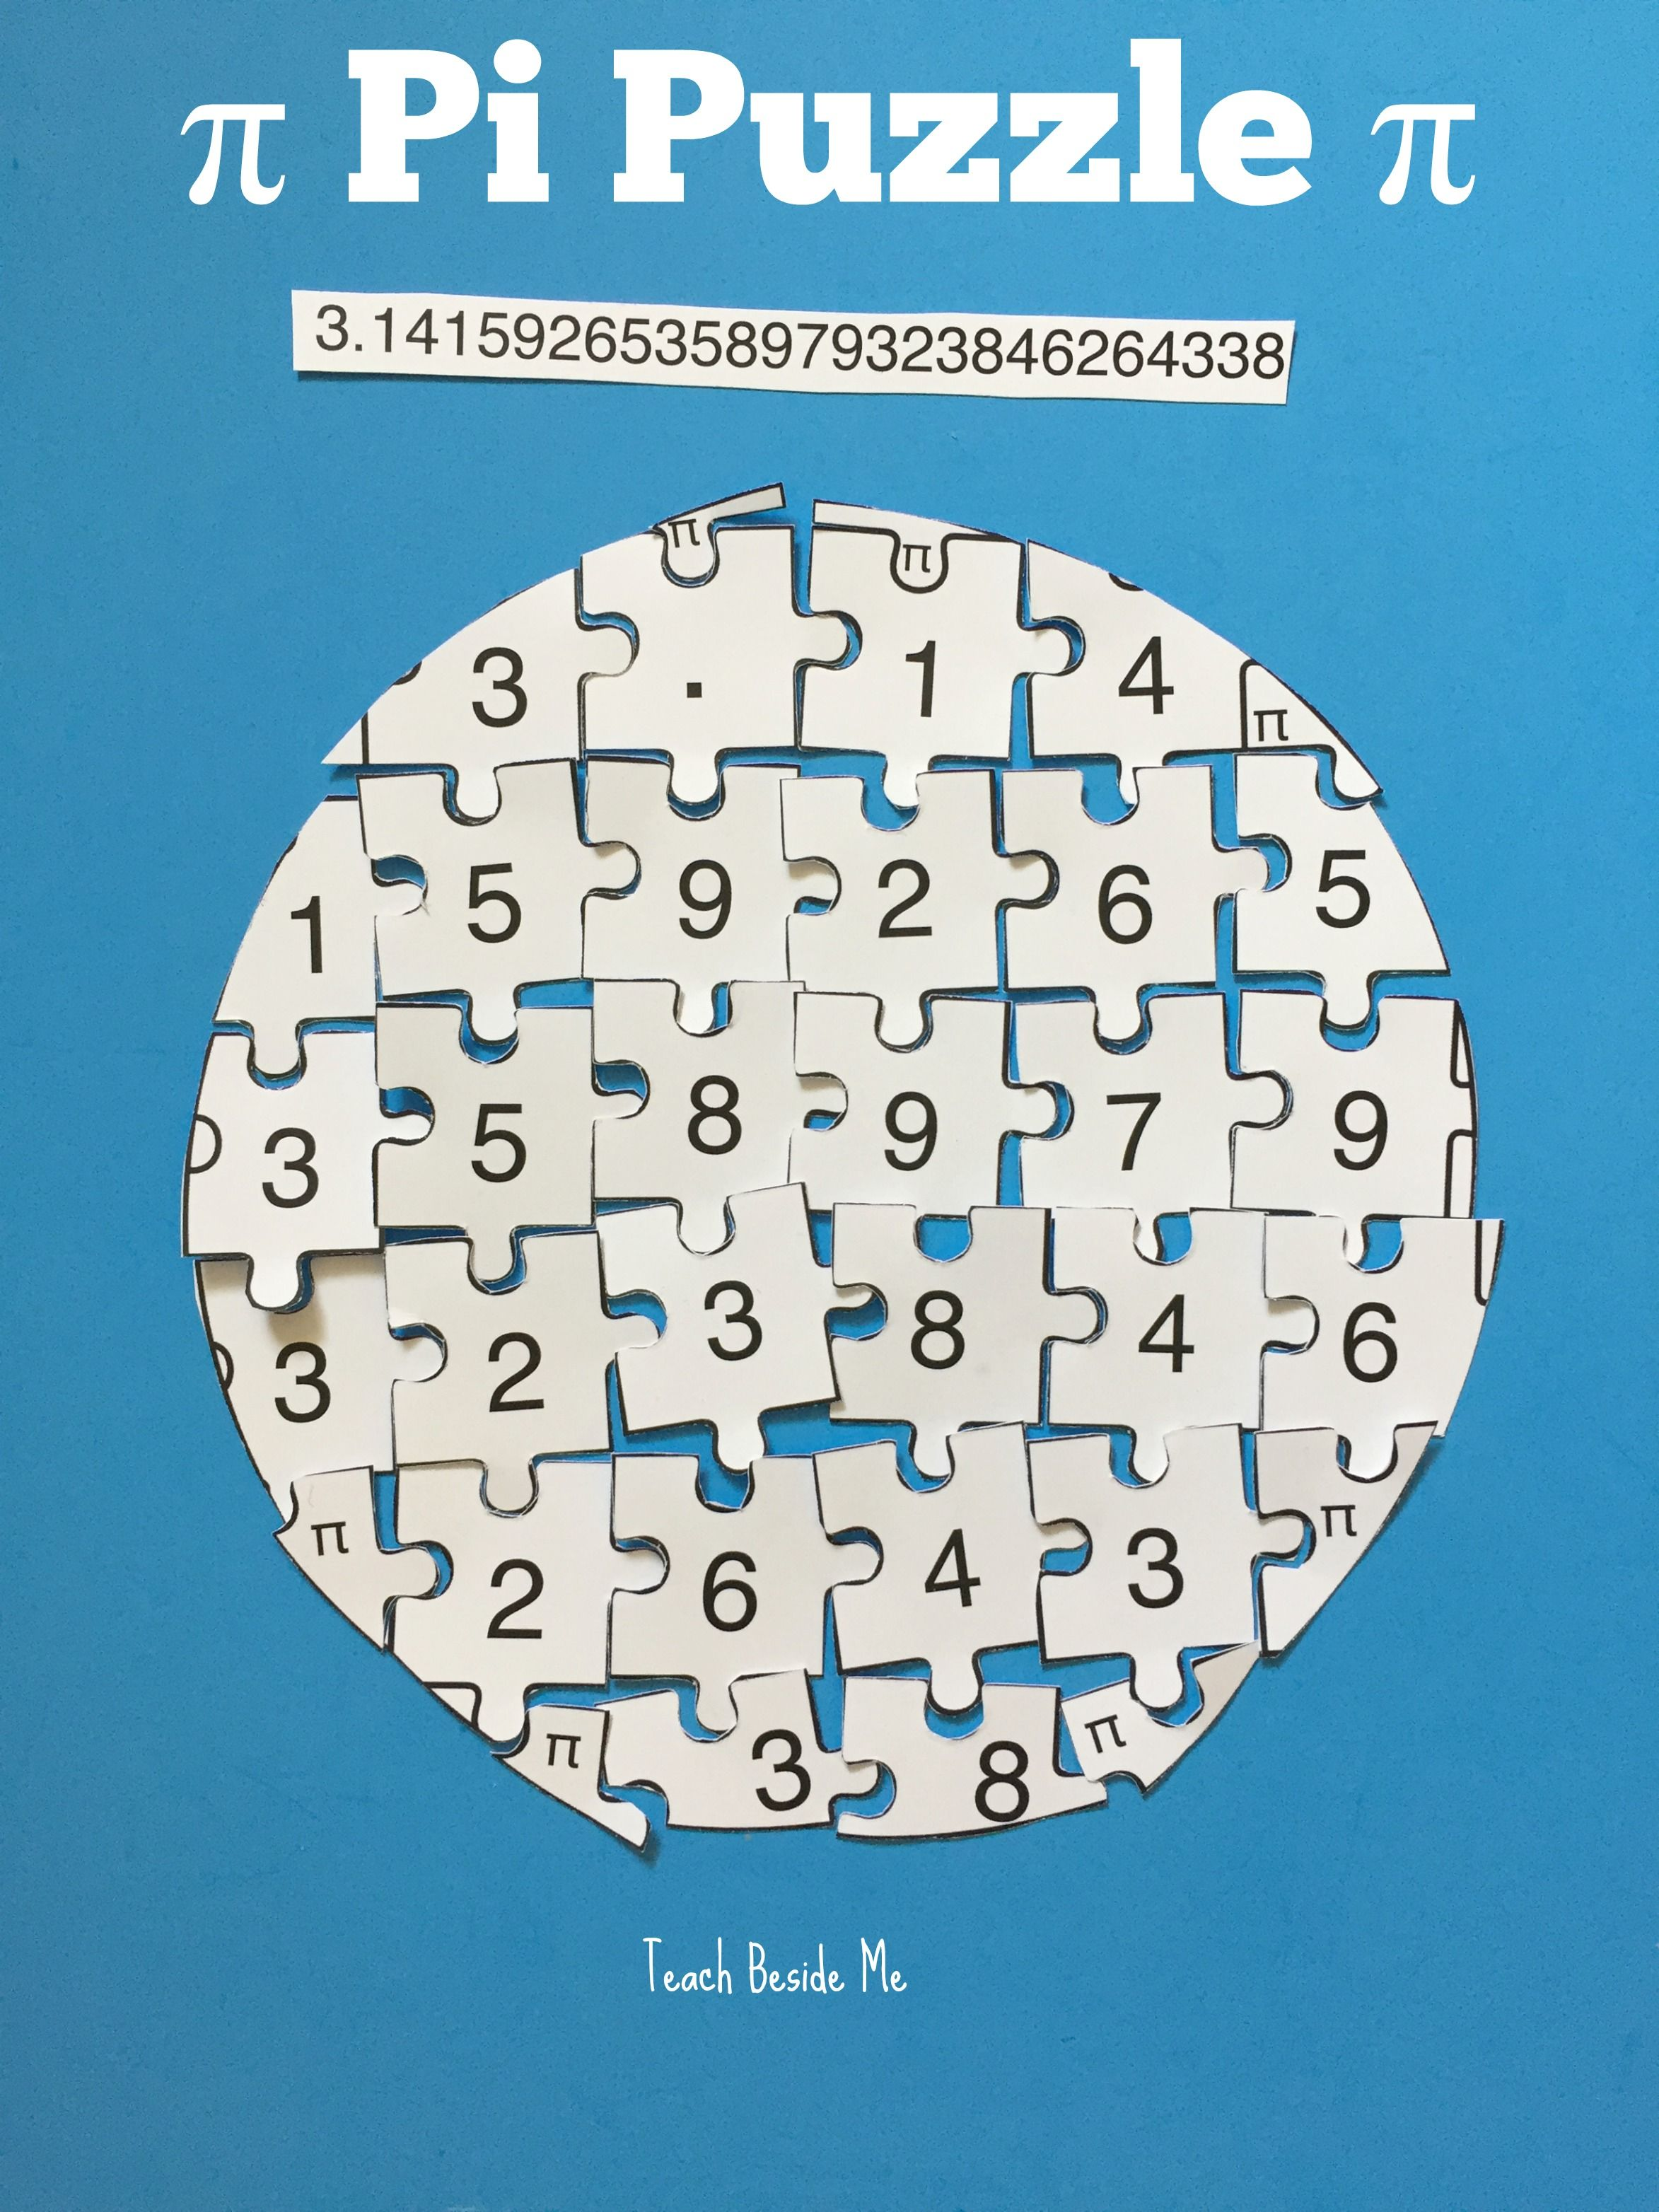 Printable Pi Puzzle for Pi Day | Free Homeschool Printables and ...